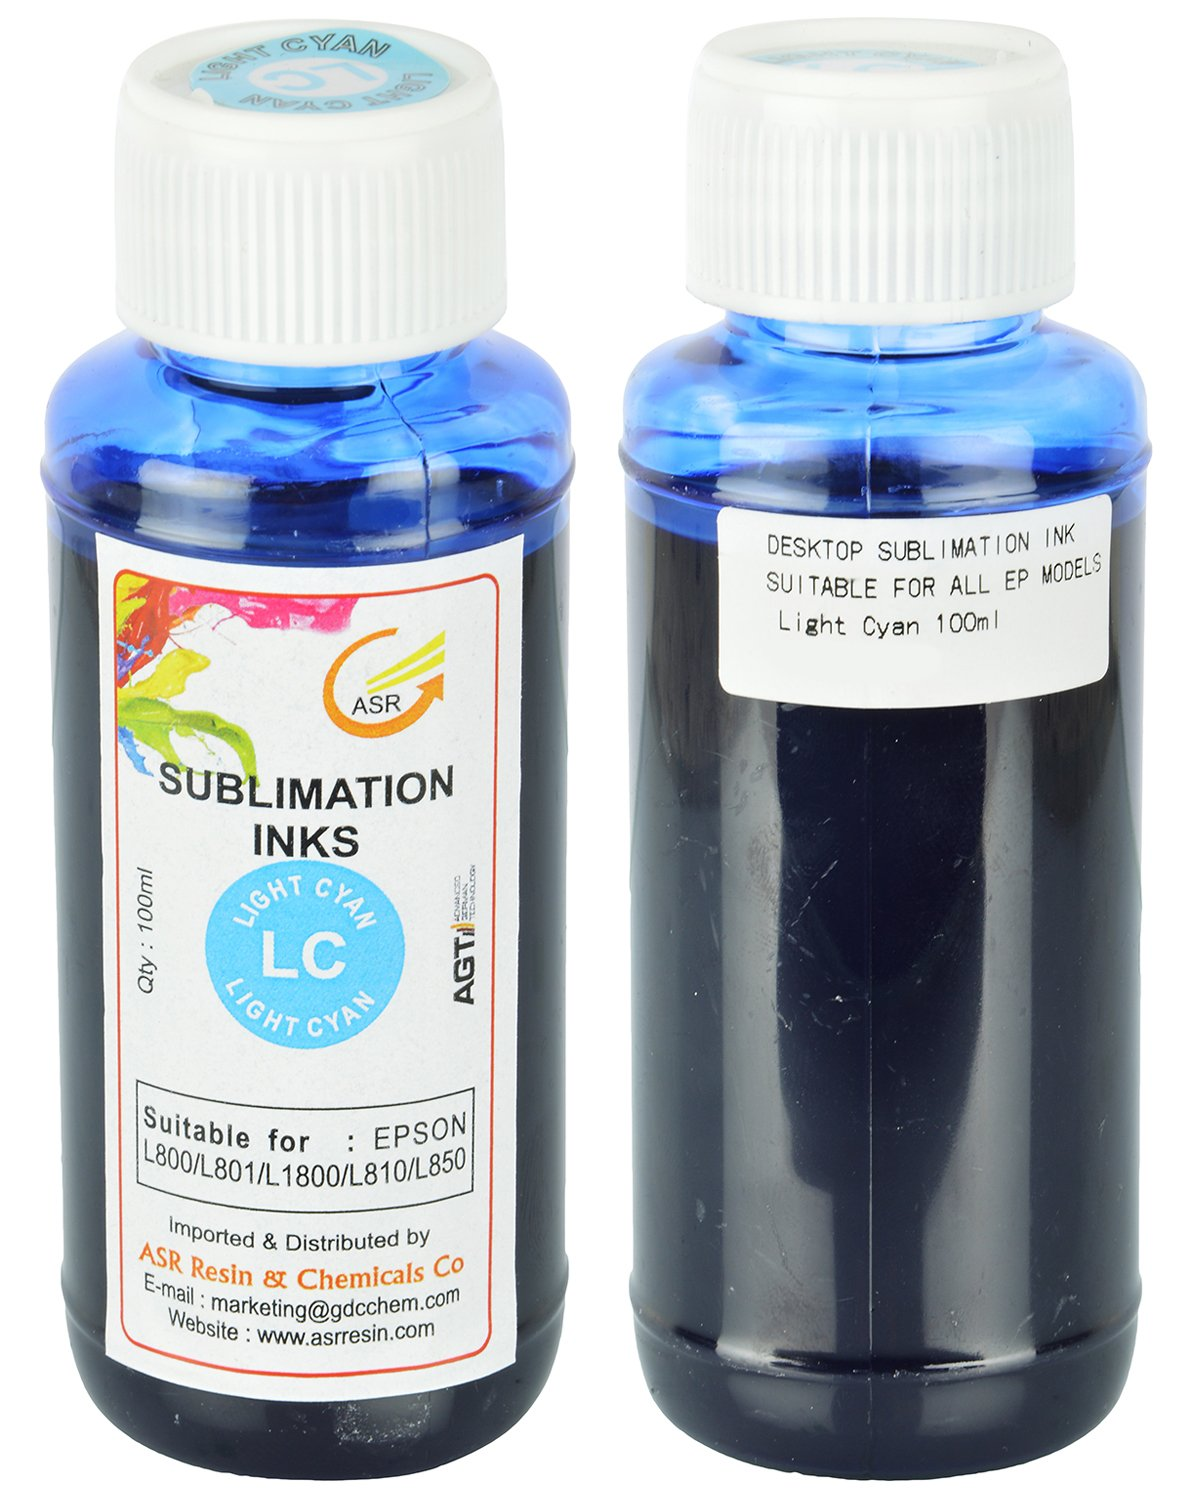 Sublimation Ink Combo Of 6 For Epson Printer L800 L801 L1800 L810 L850 100 Ml Office Products